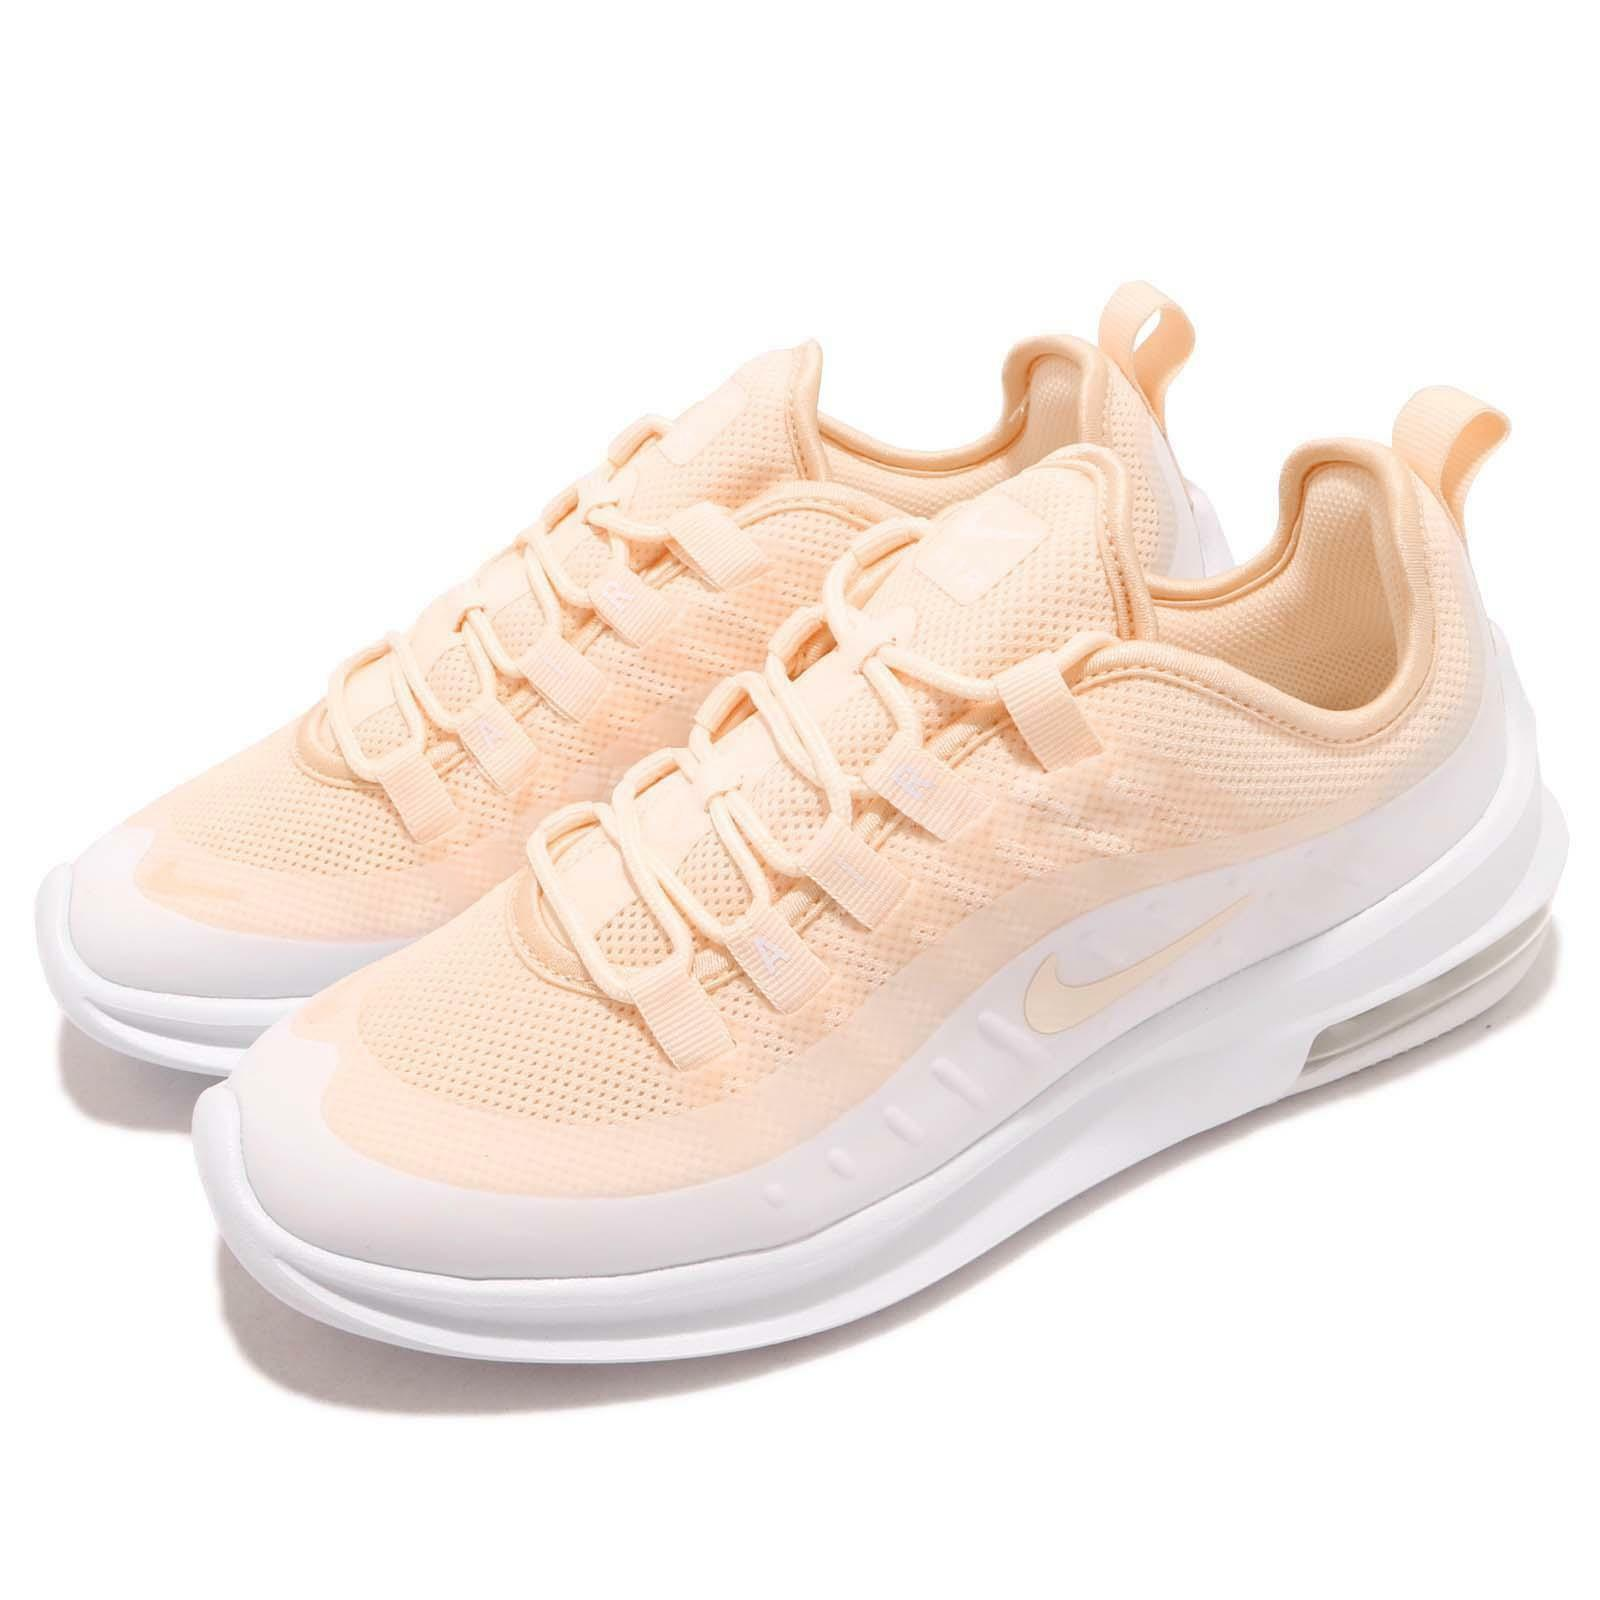 2a826d5a3442e Nike Wmns Air Max Axis Guava Blanc Ice Blanc Guava Women Running Chaussures  Baskets AA2168-